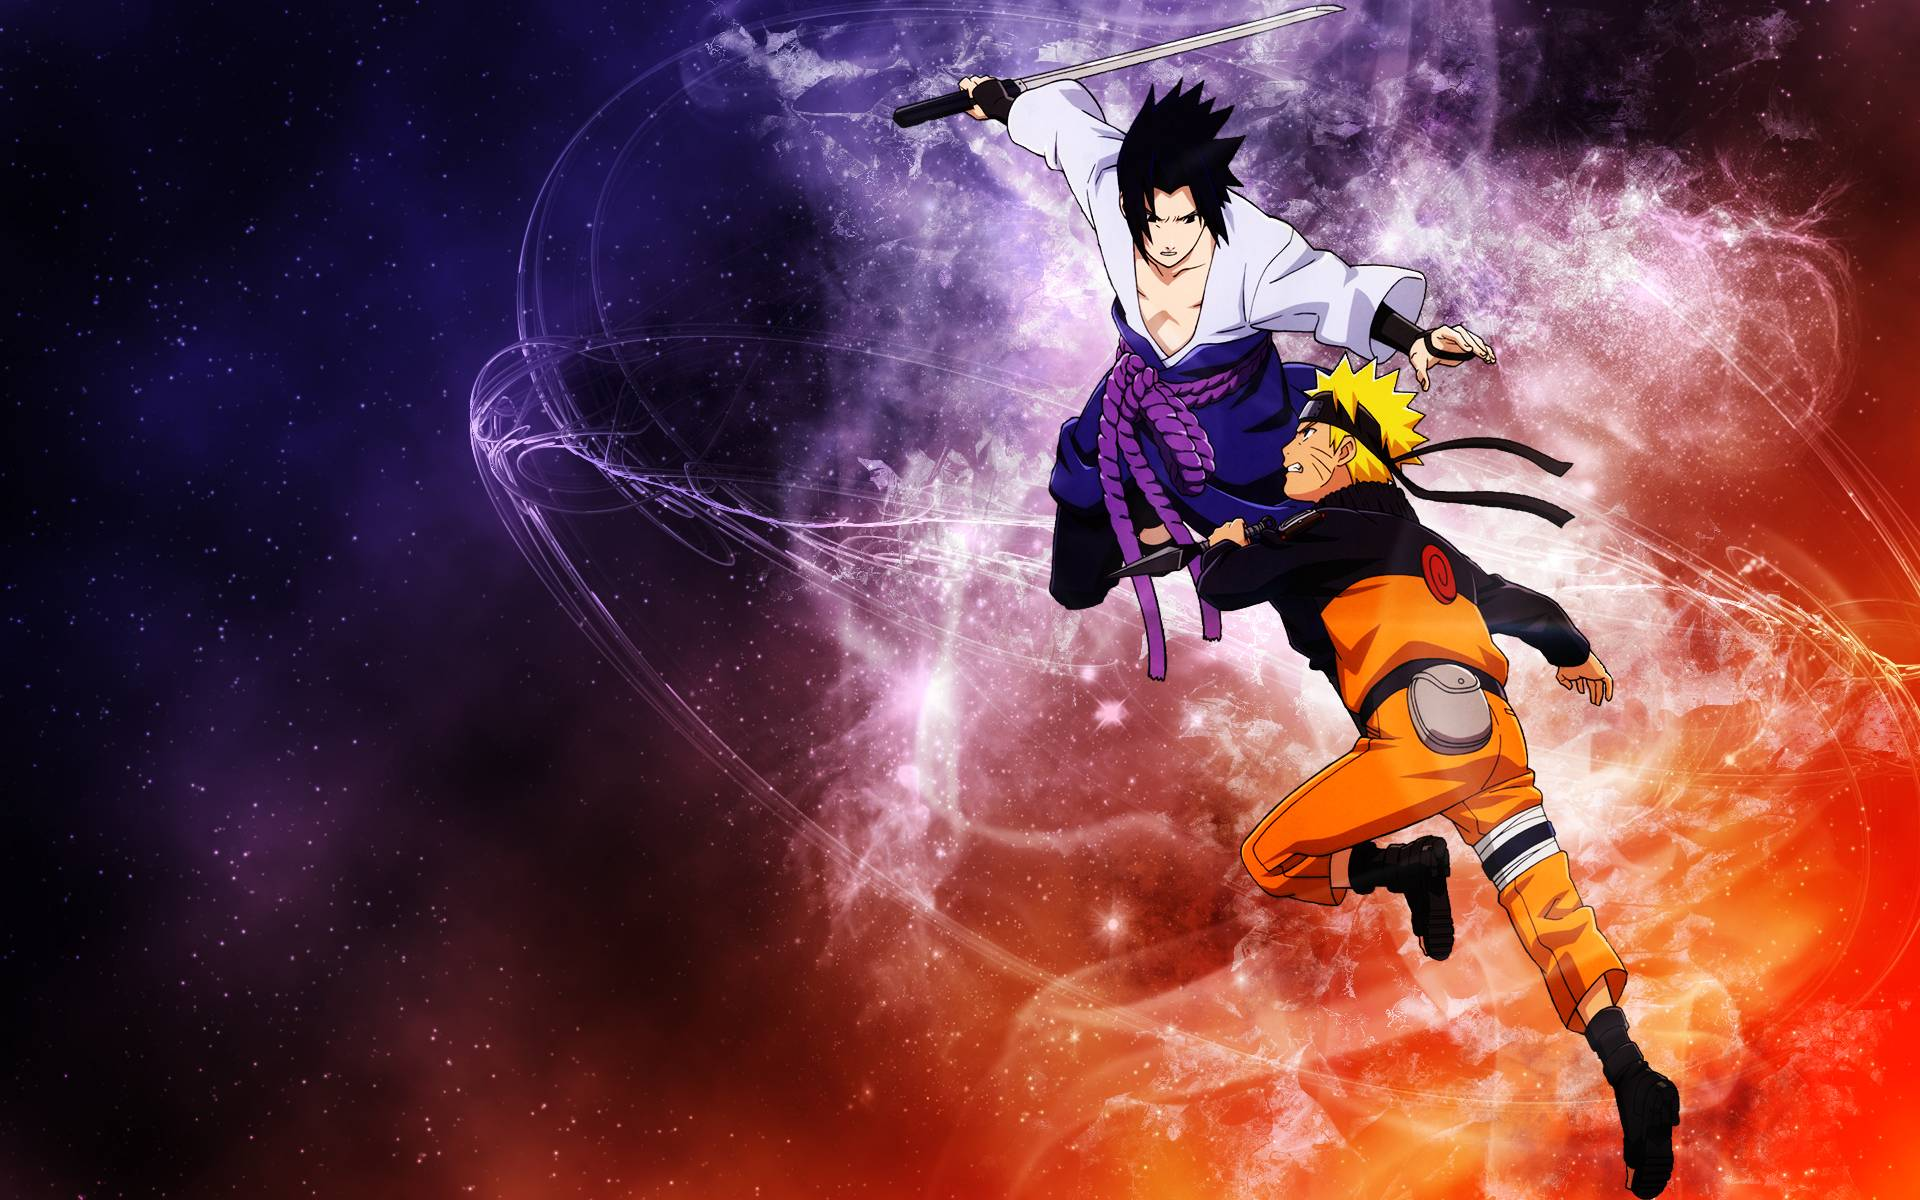 naruto wallpaper | naruto wallpaper - Part 5